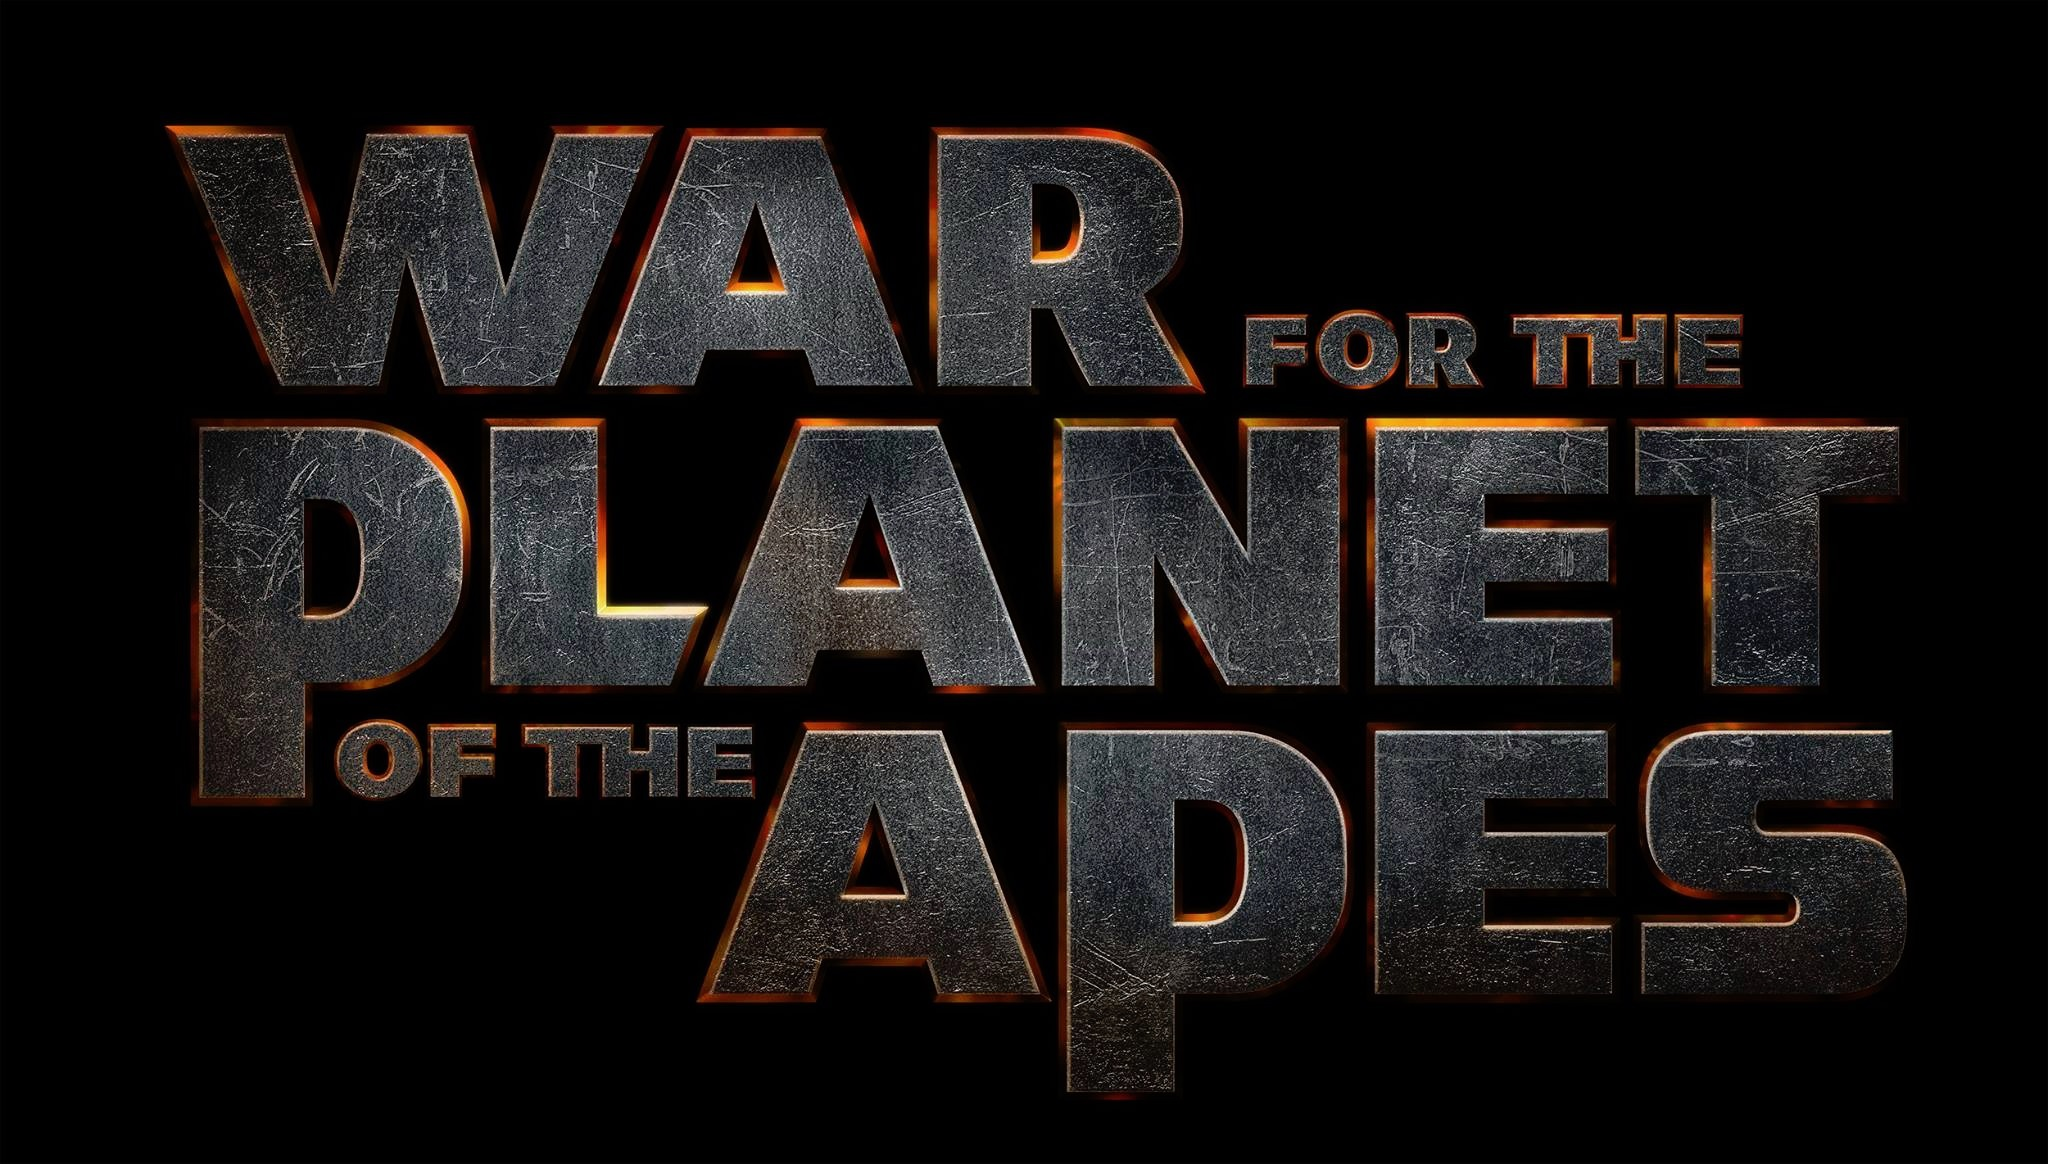 5 HD War for the Planet of the Apes Movie Wallpapers ...